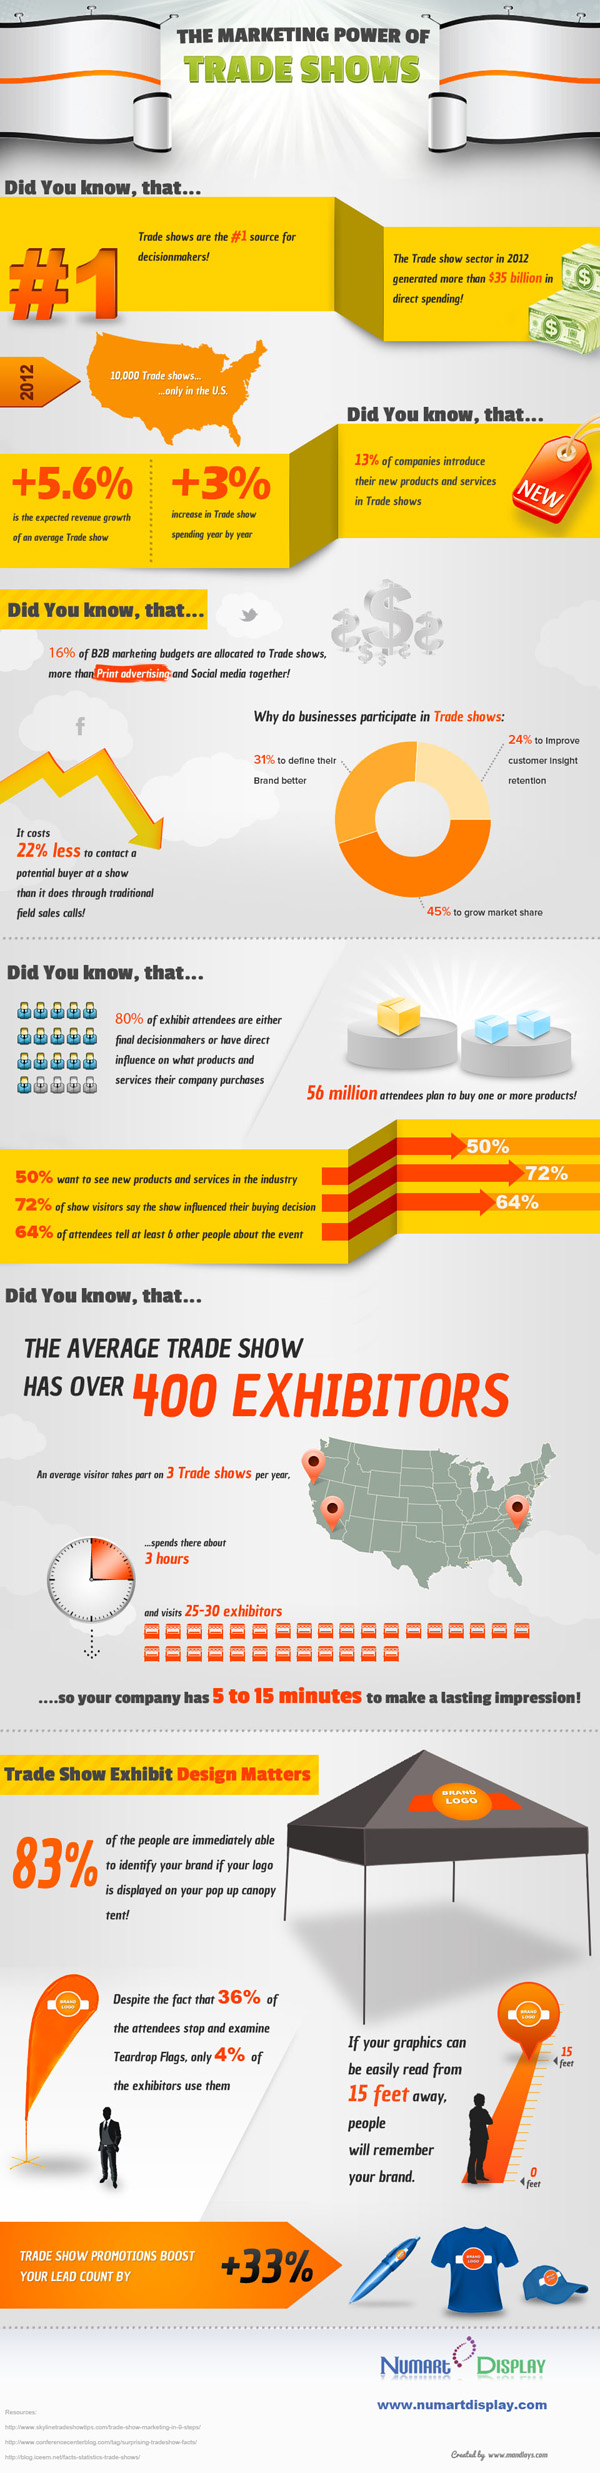 The Marketing Power Of Tradeshows Infographic